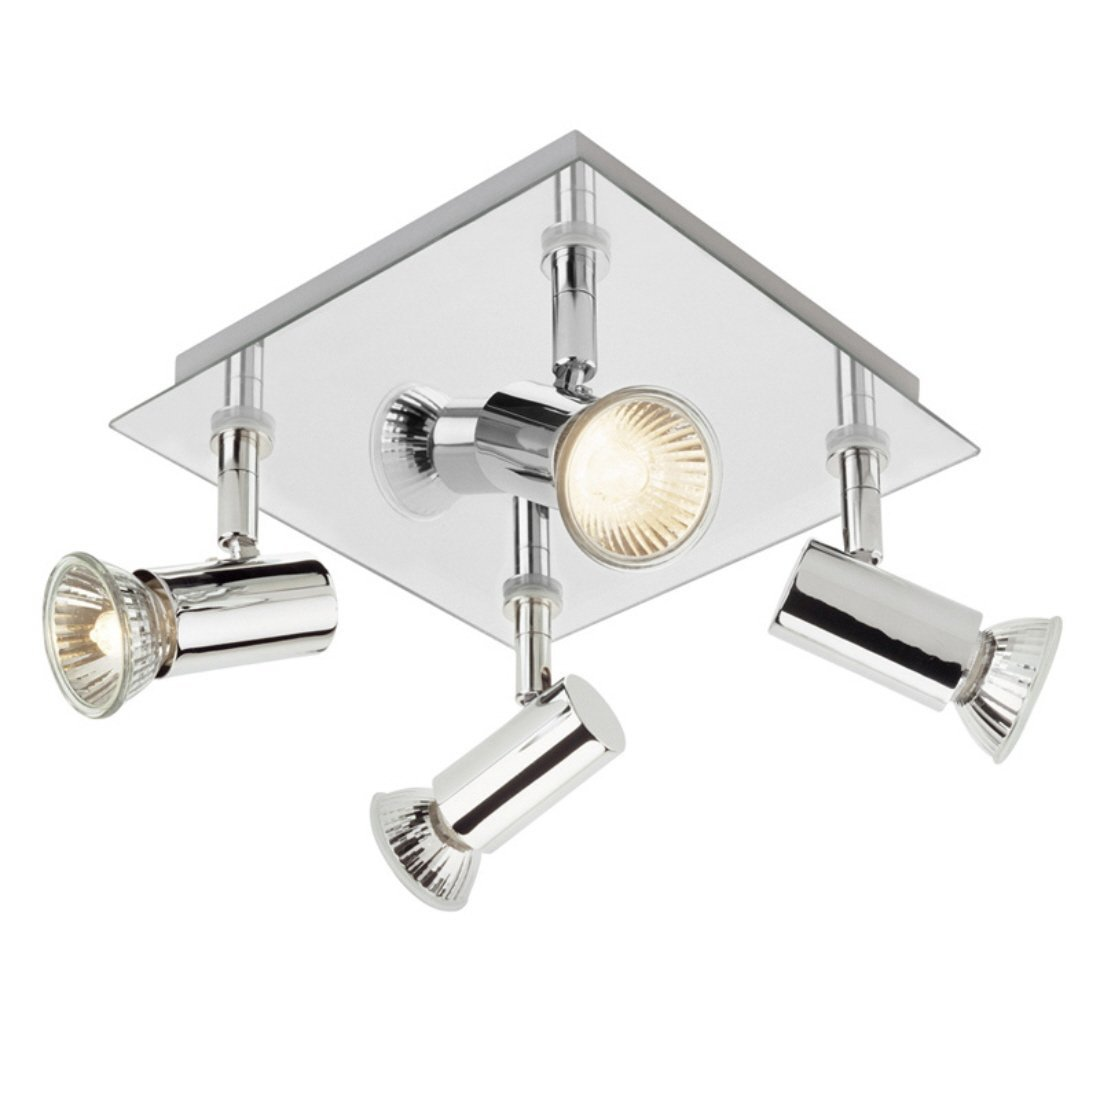 Modern square chrome 4 way gu10 ceiling spotlight amazon modern square chrome 4 way gu10 ceiling spotlight amazon lighting mozeypictures Choice Image